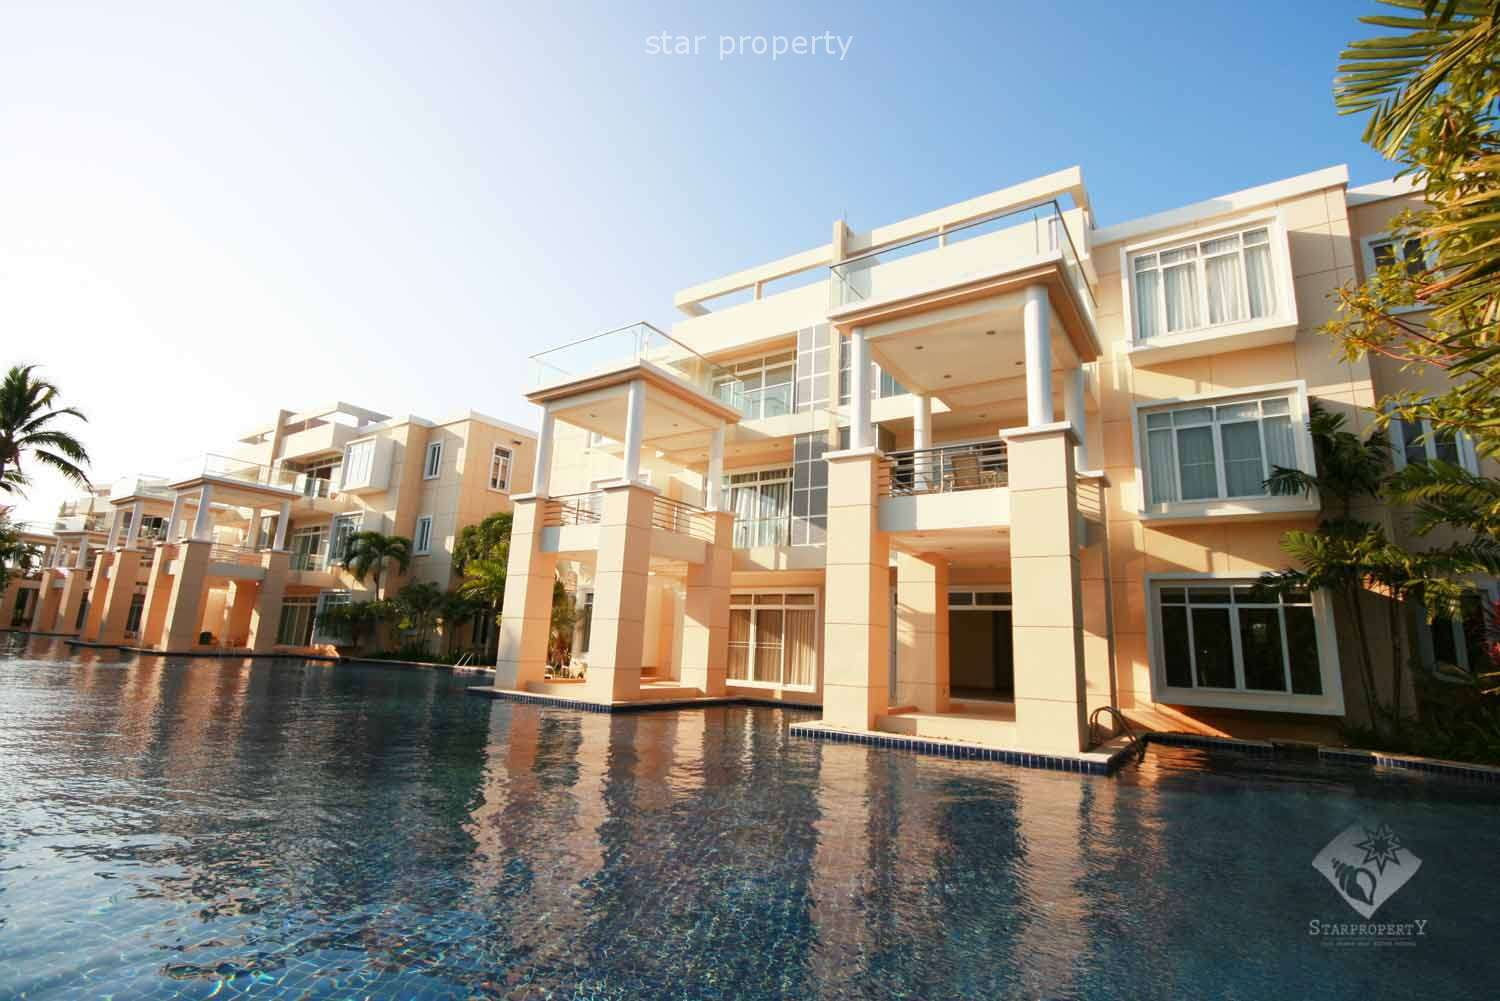 2 Bedroom Apartment at Blue Lagoon Cha Am Hua Hin at Blue Lagoon, Cha Am Hua Hin